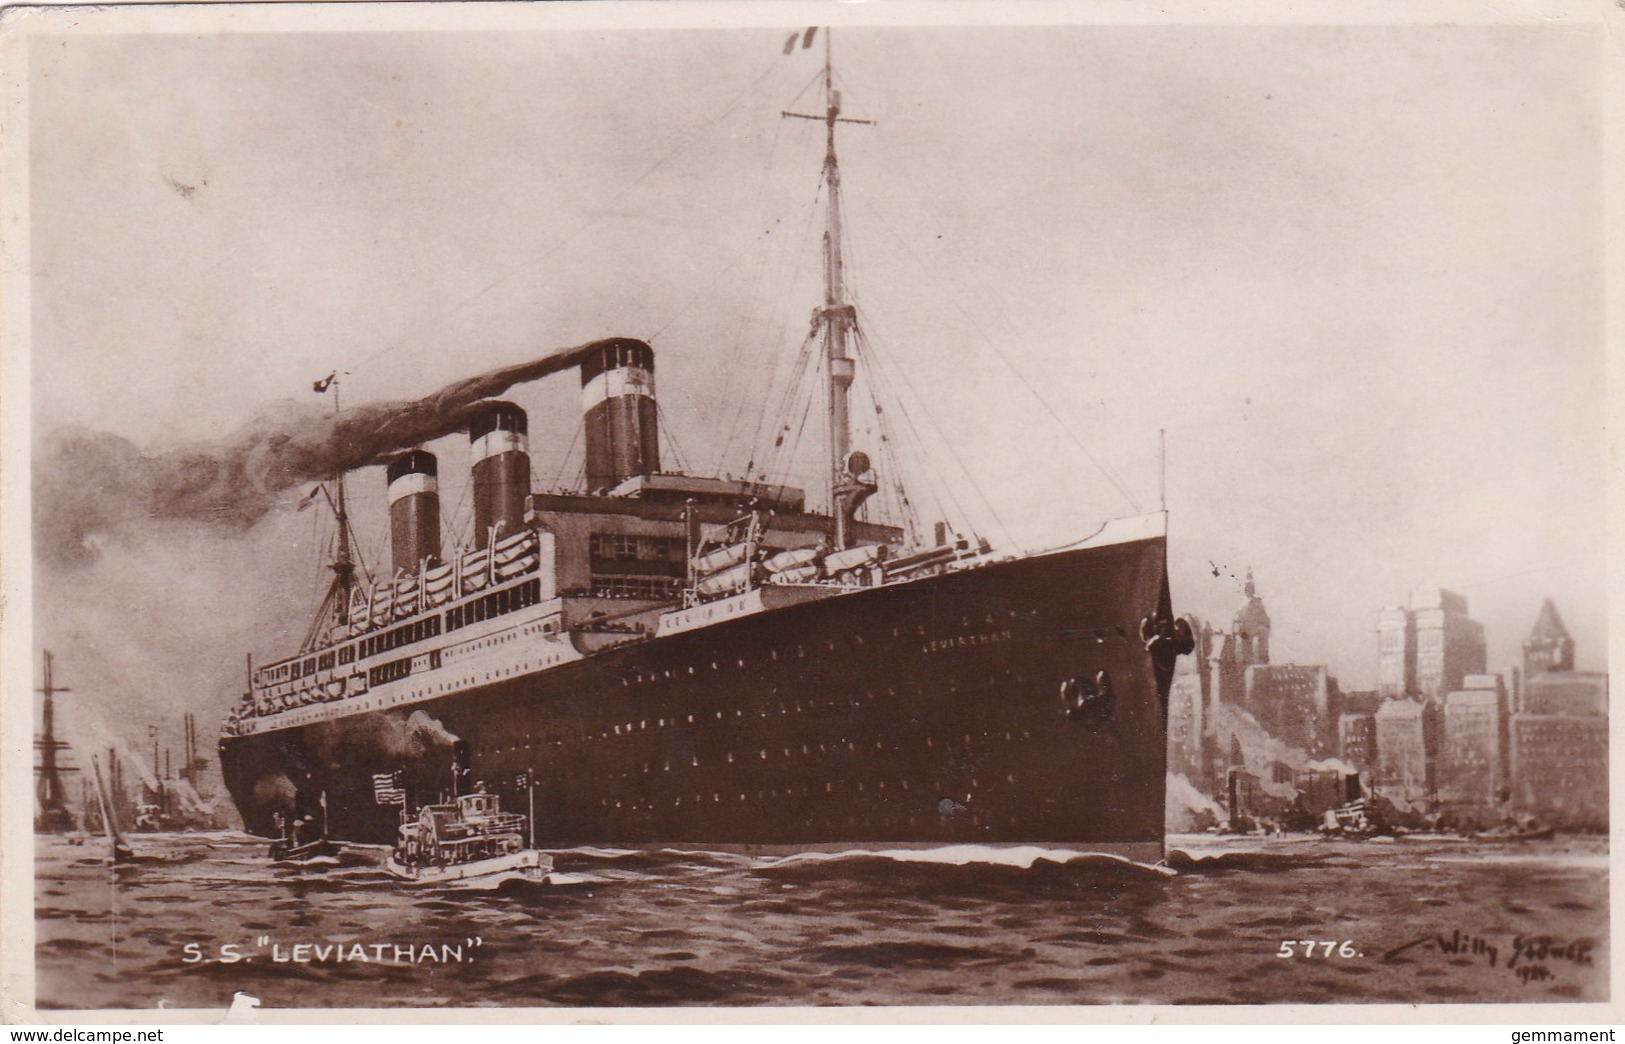 S.S. LEVIATHAN - Paquebote